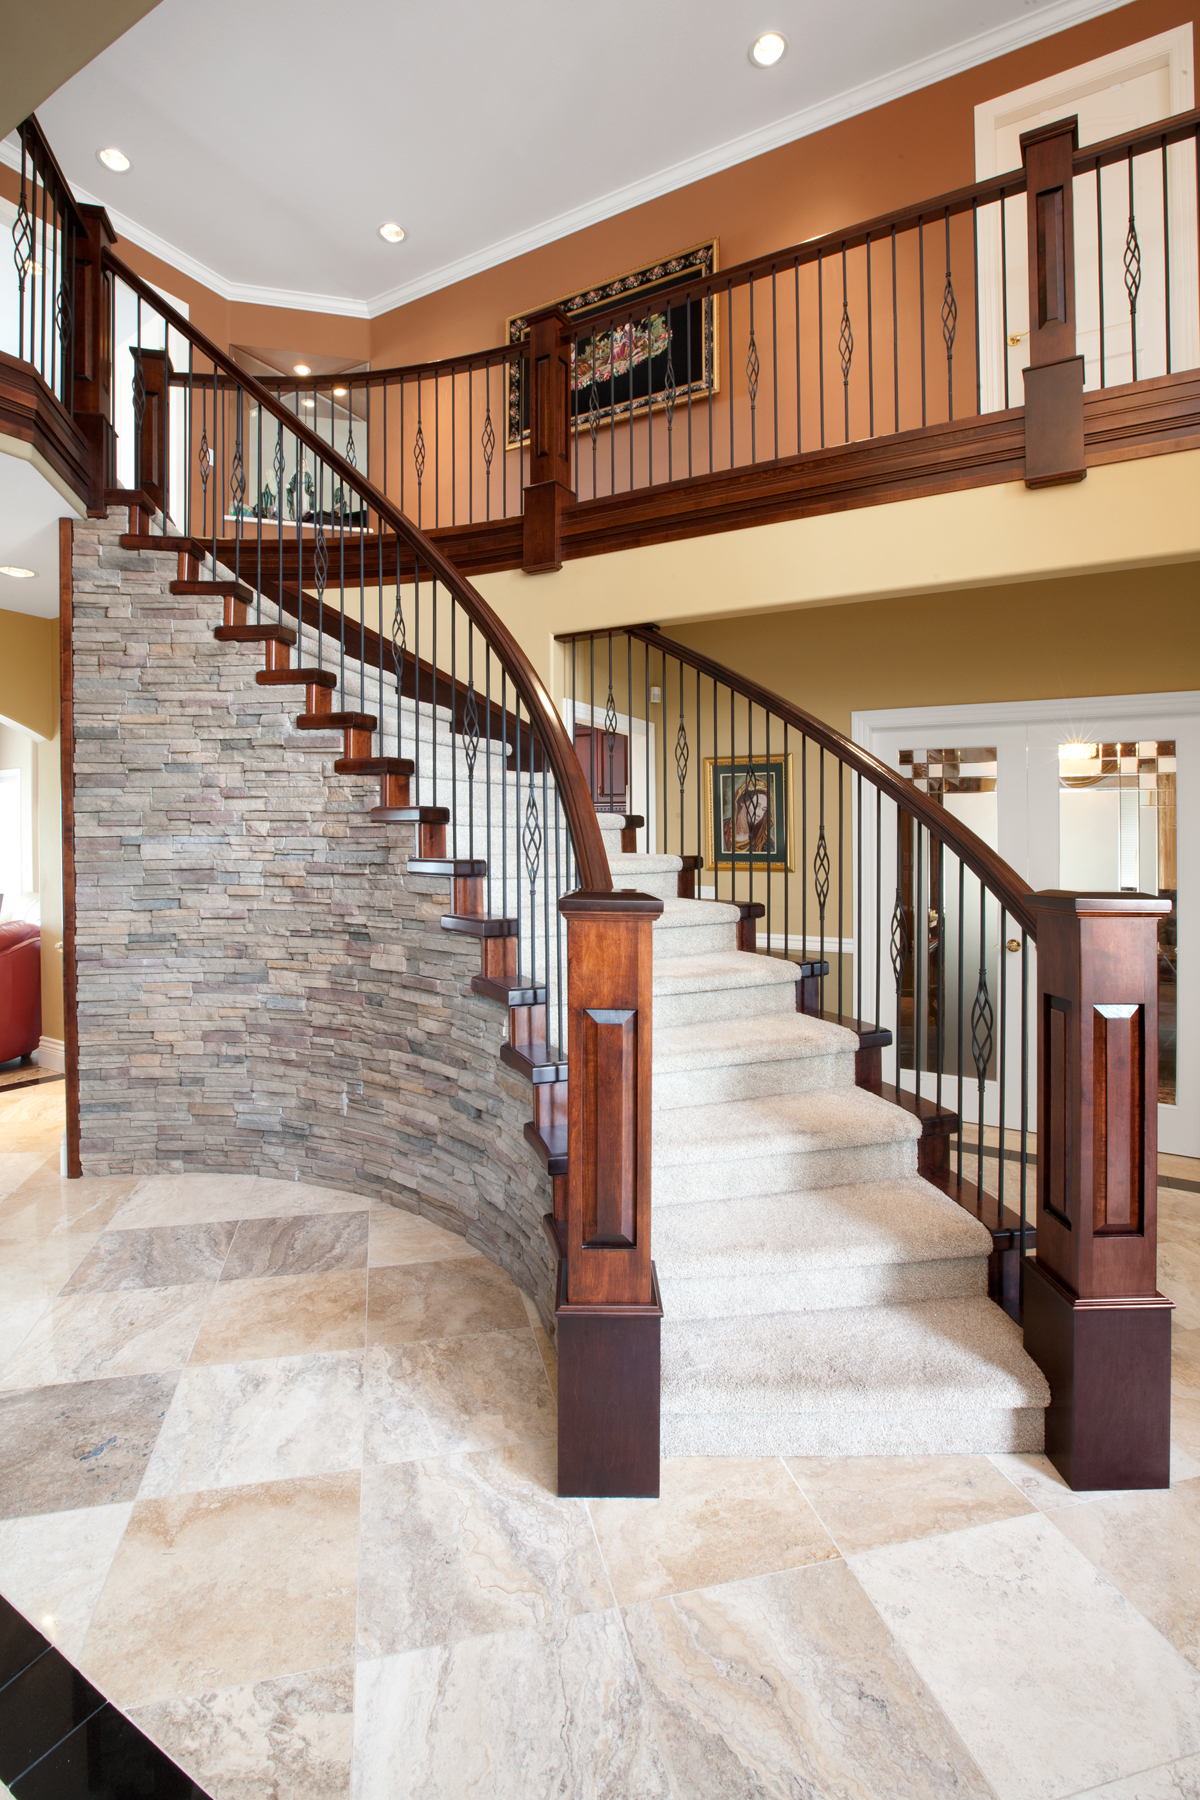 Custom millwork by Port Moody Contractor Zimal Contracting and Restorations